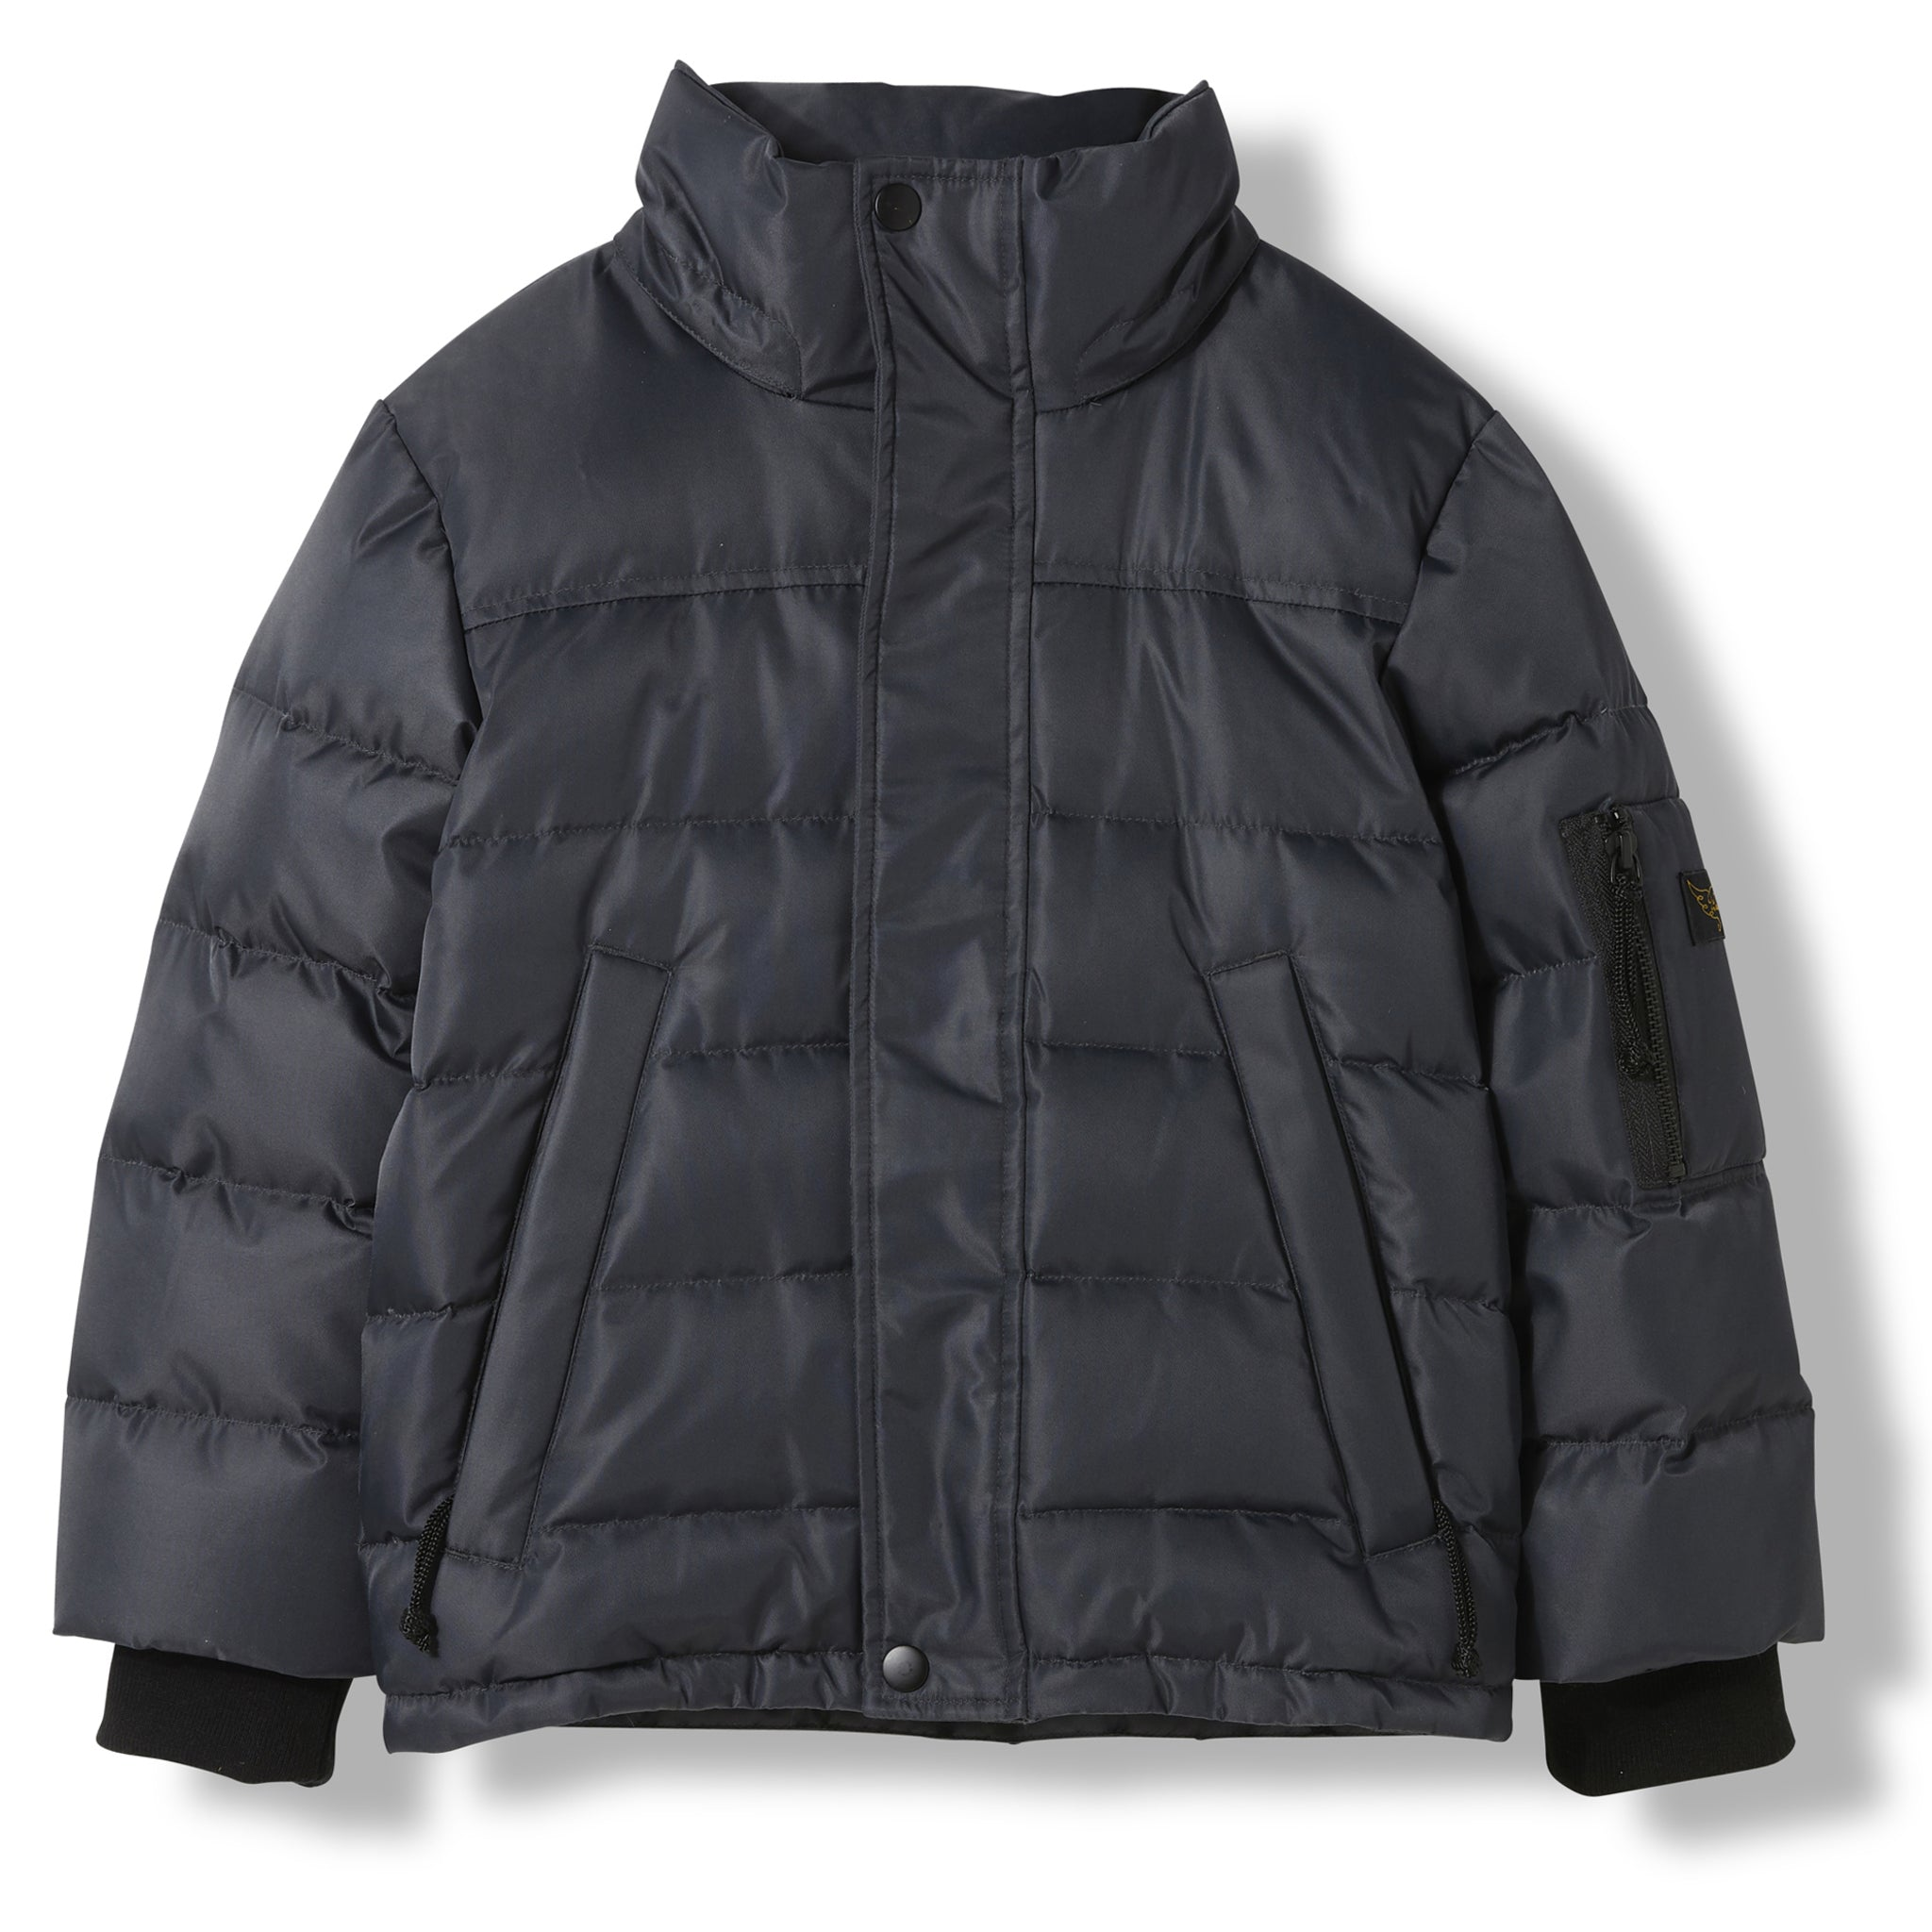 SNOWLYNX Ash Black -  Woven Down Jacket 4